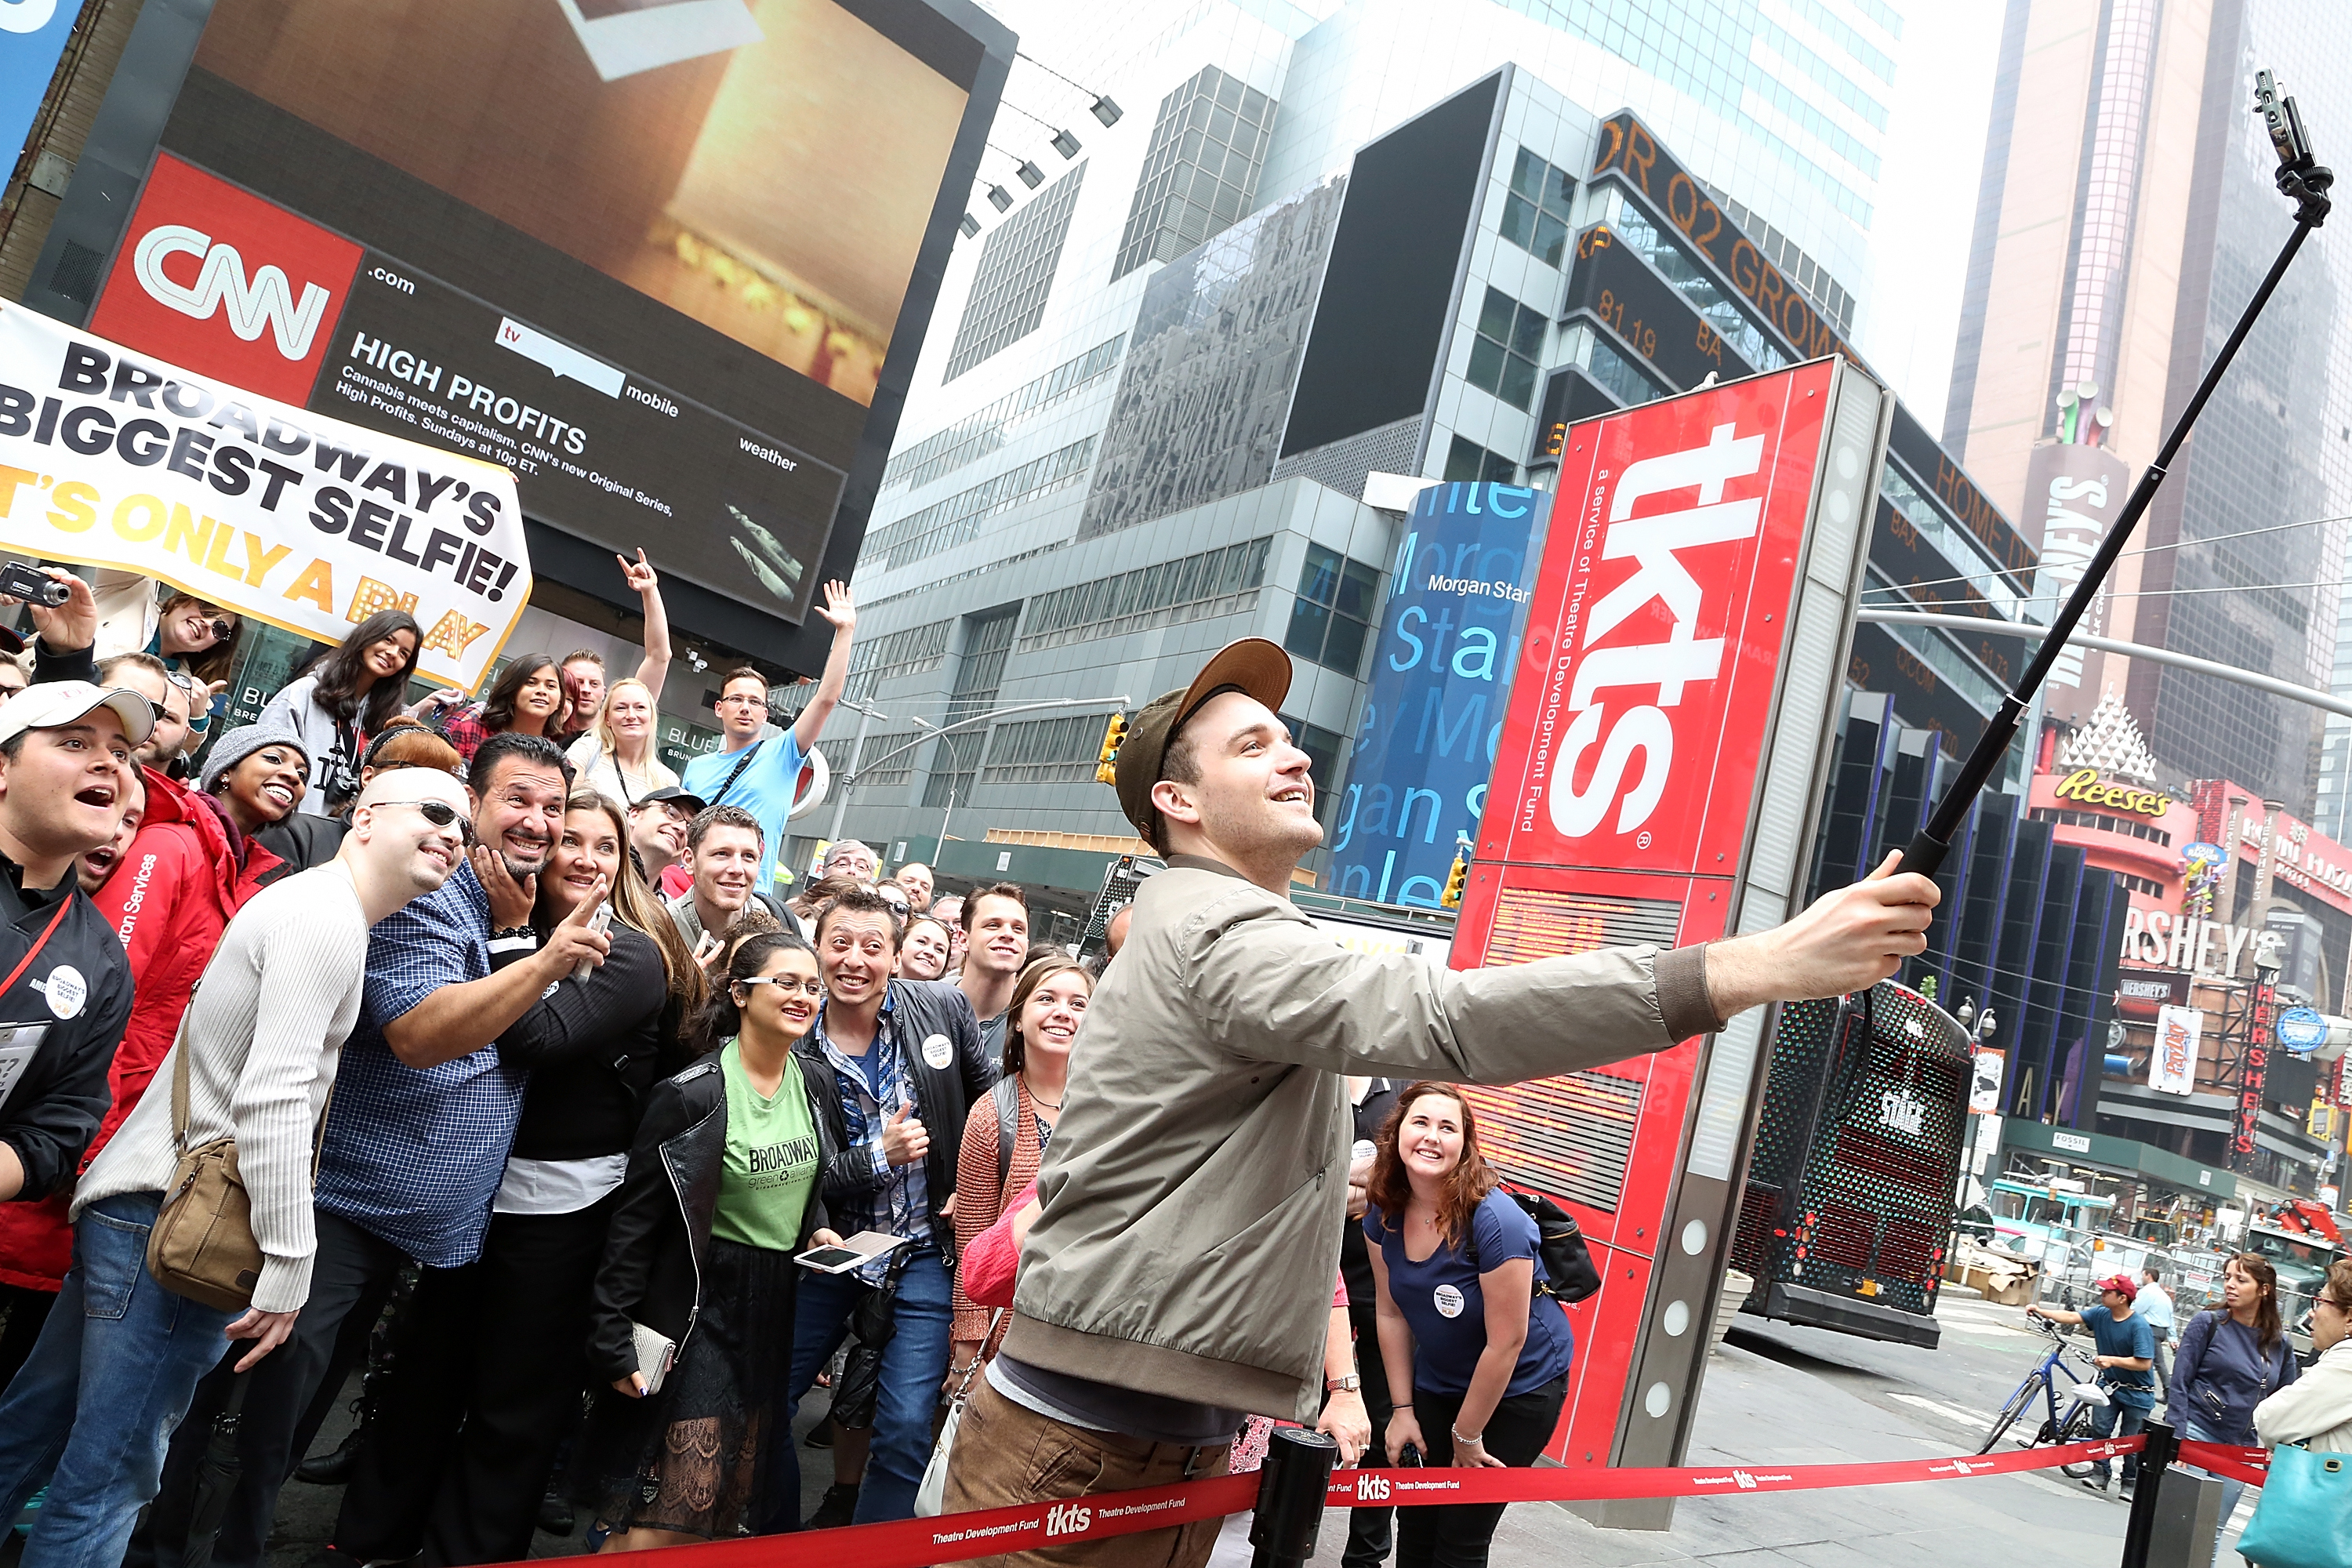 "Selfie on stairs: Broadway actor Micah Stock takes a selfie with fans as the comedy ""It's Only A Play"" attempts Broadway's Biggest Selfie at Times Square Stairs Tuesday in New York City."